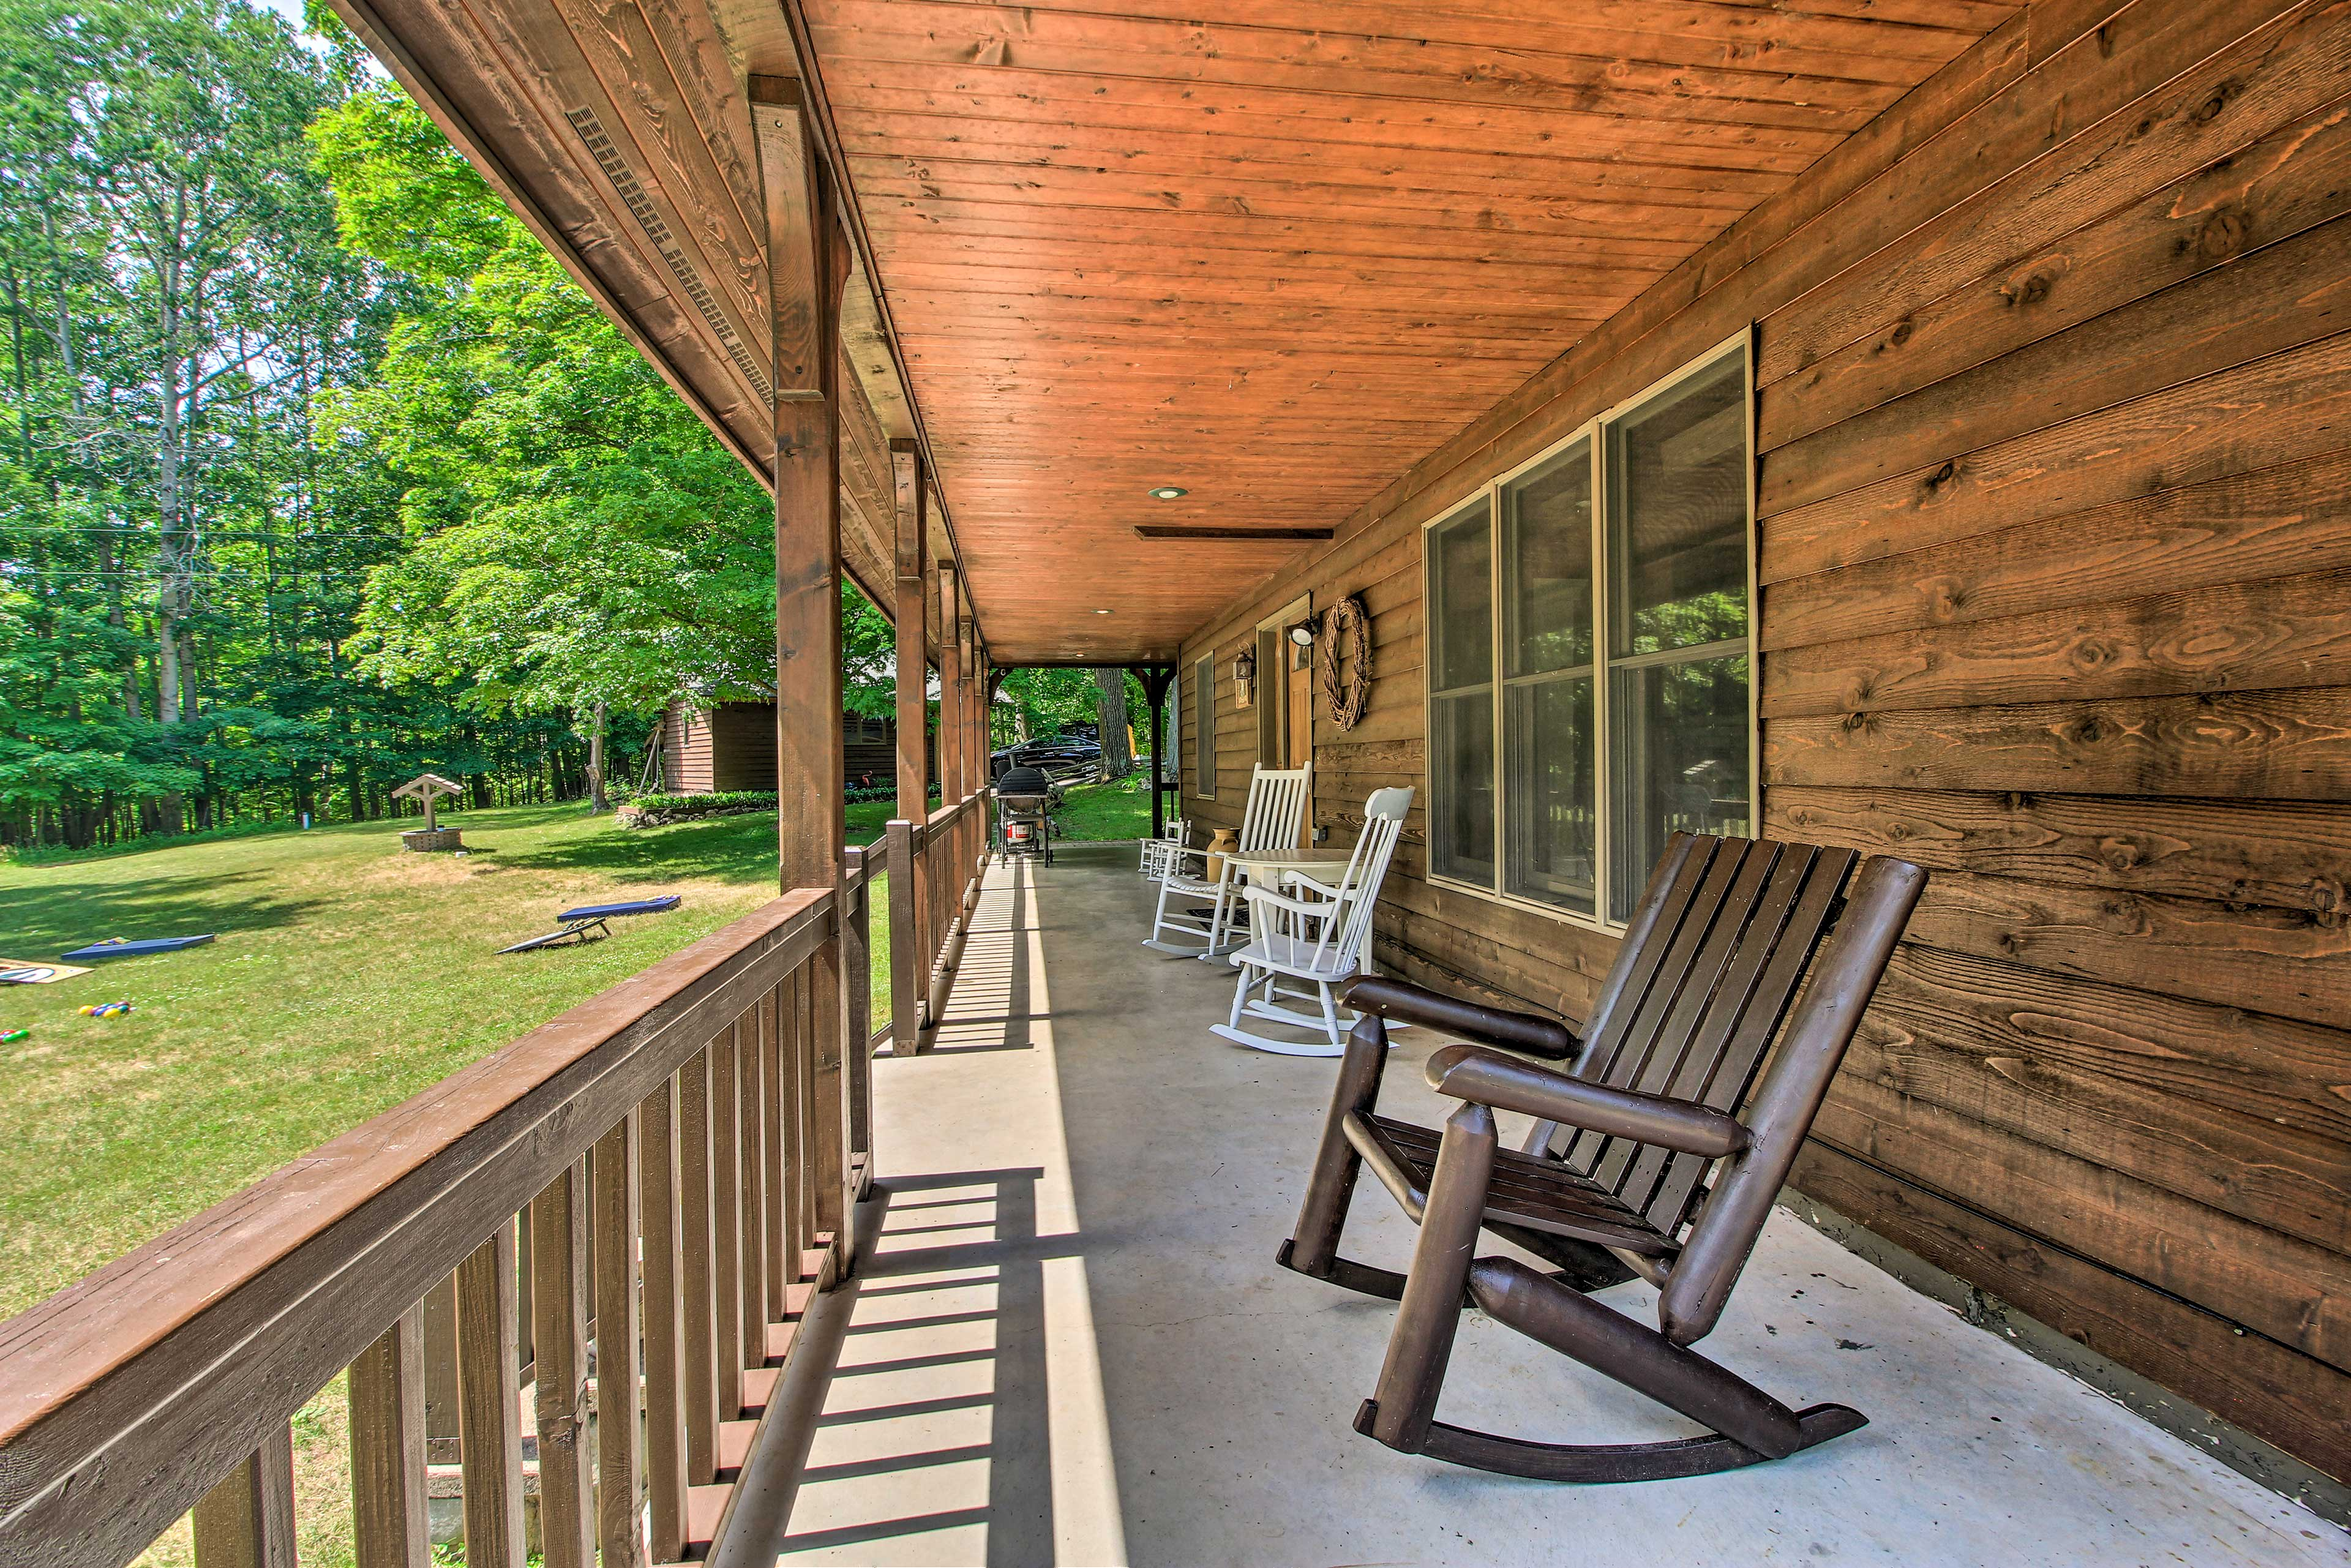 Kick back with your morning coffee on the porch.